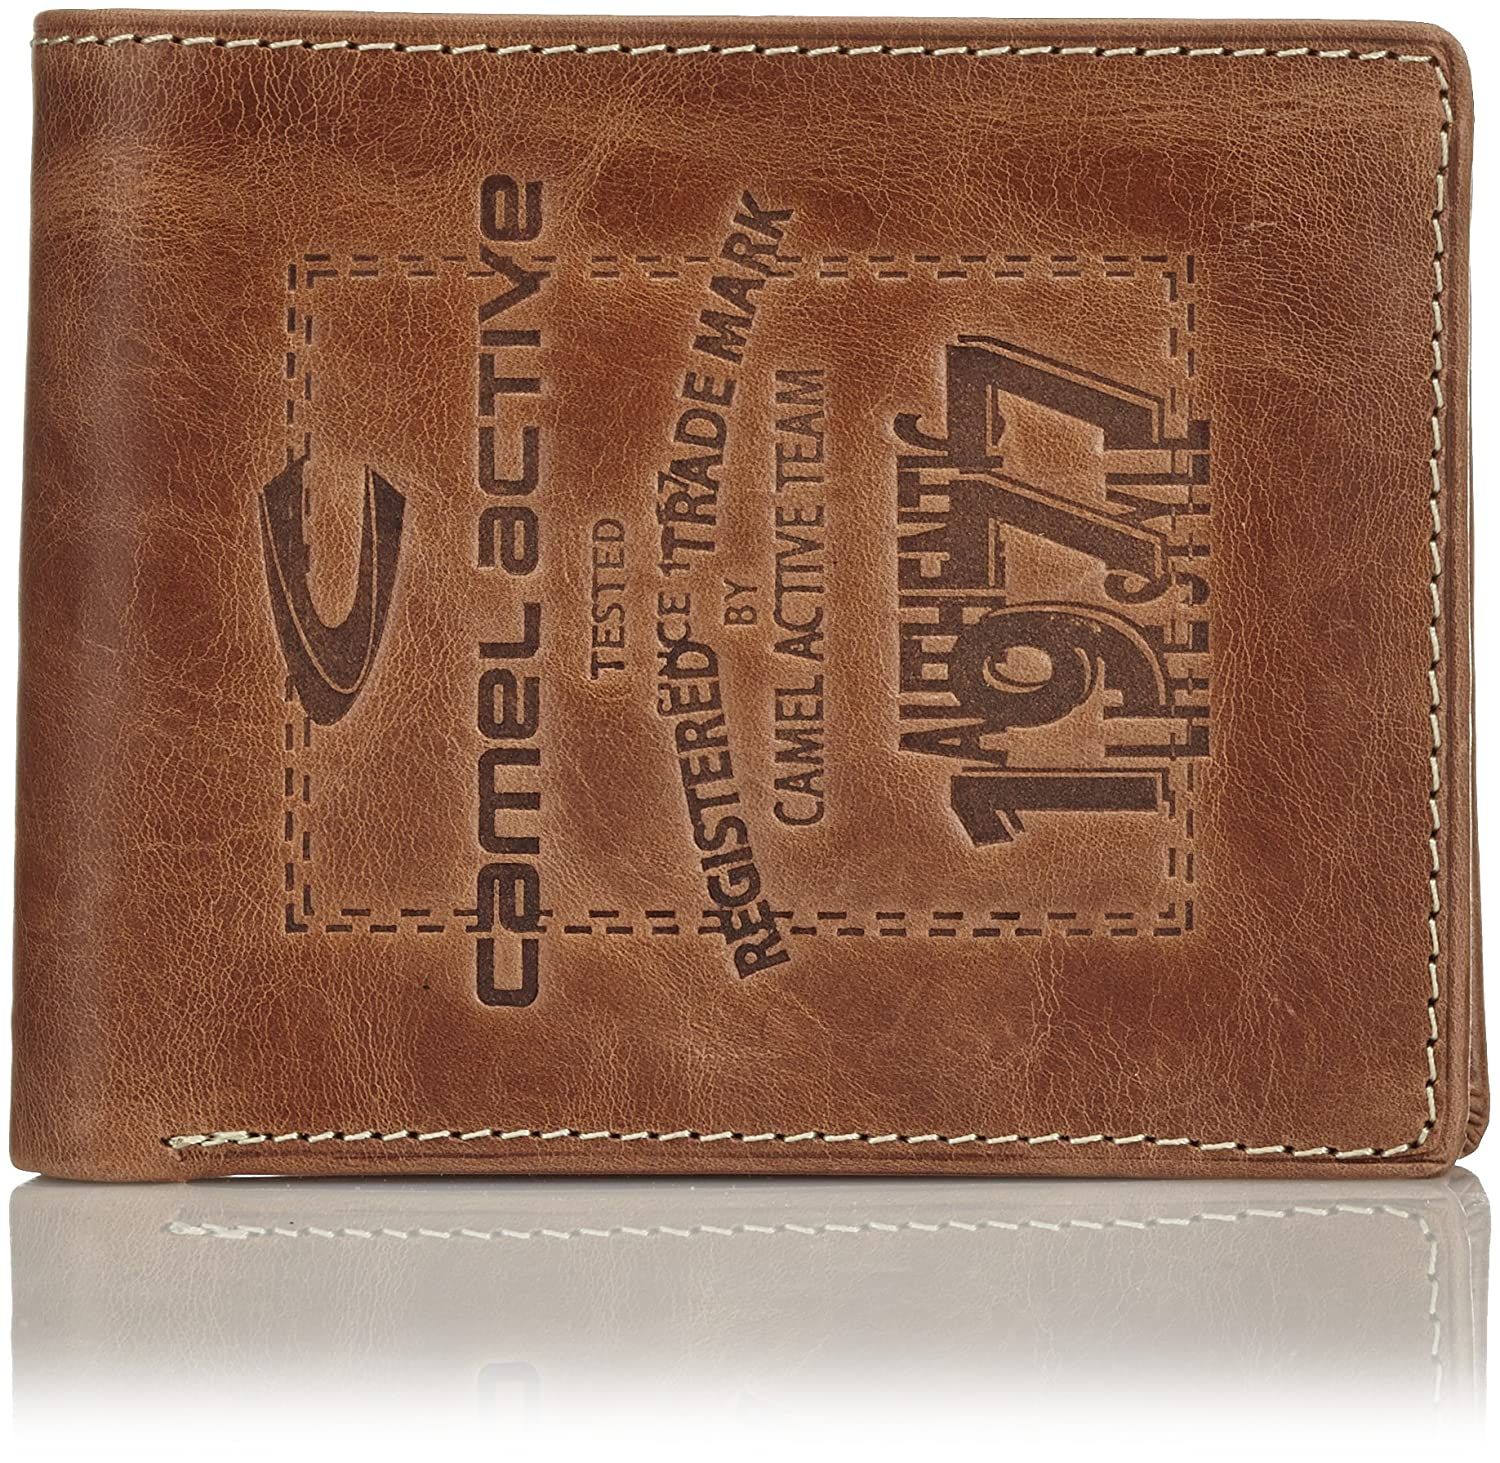 074bce8435f camel active Adventure Team II Wallet - 12.5X2X9.5